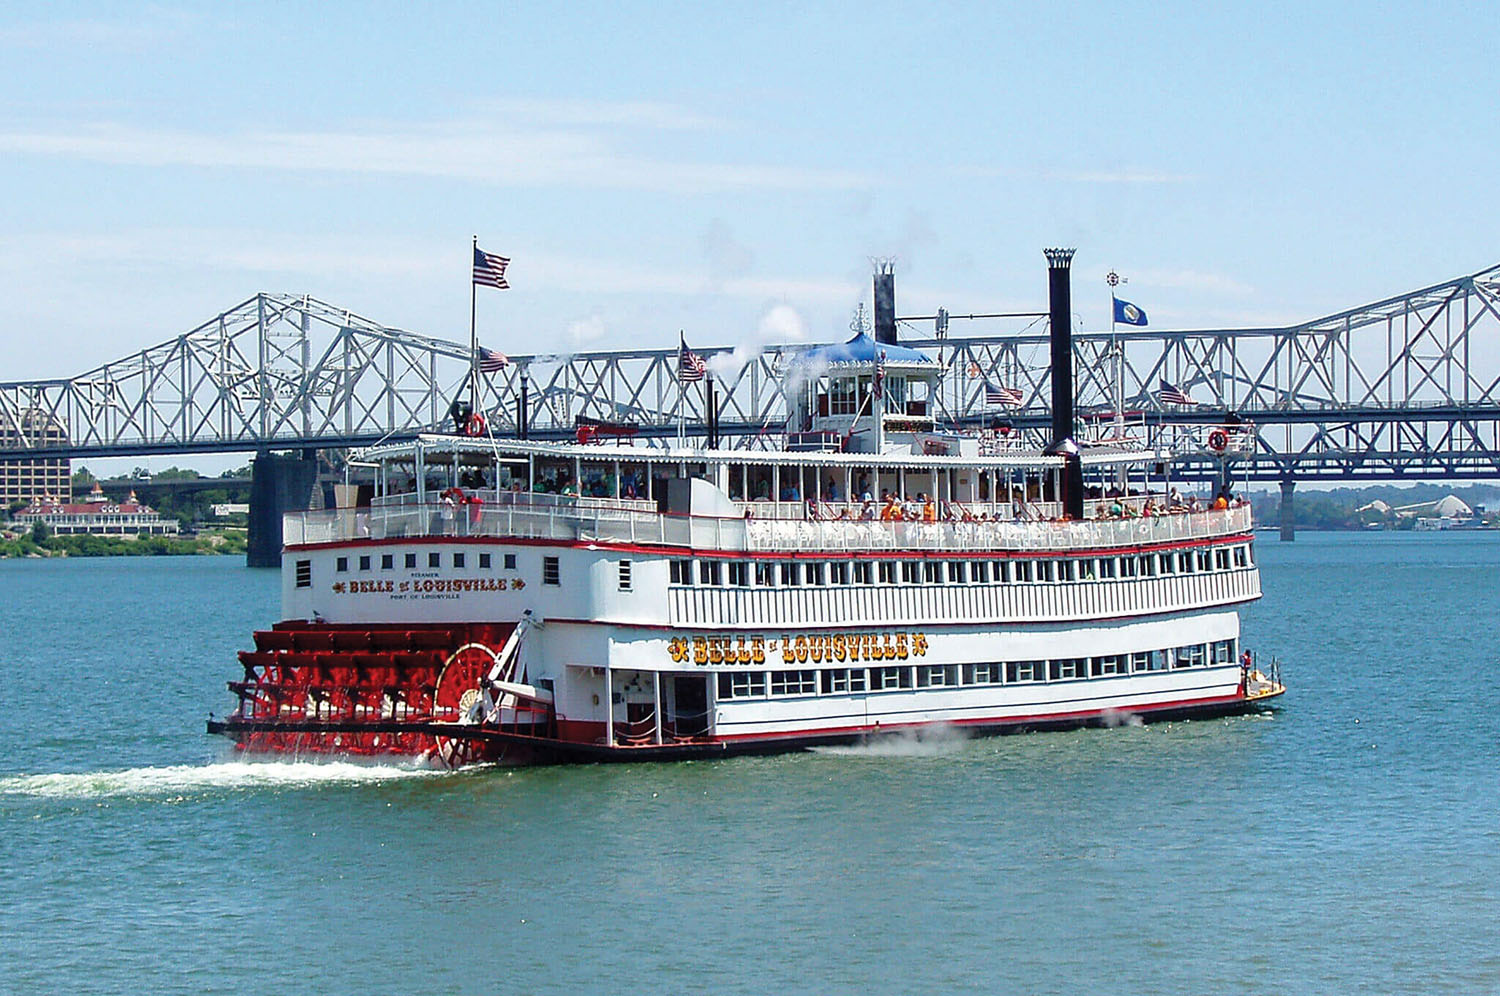 The steamboat Belle of Louisville, at 107 years old, has begun its 2021 season, offering passengers cruises on the Ohio River. The organization's administrators have sought additional funding because of budget shortfalls, in part because of the COVID-19 pandemic. (Photo courtesy of Belle of Louisville Riverboats)